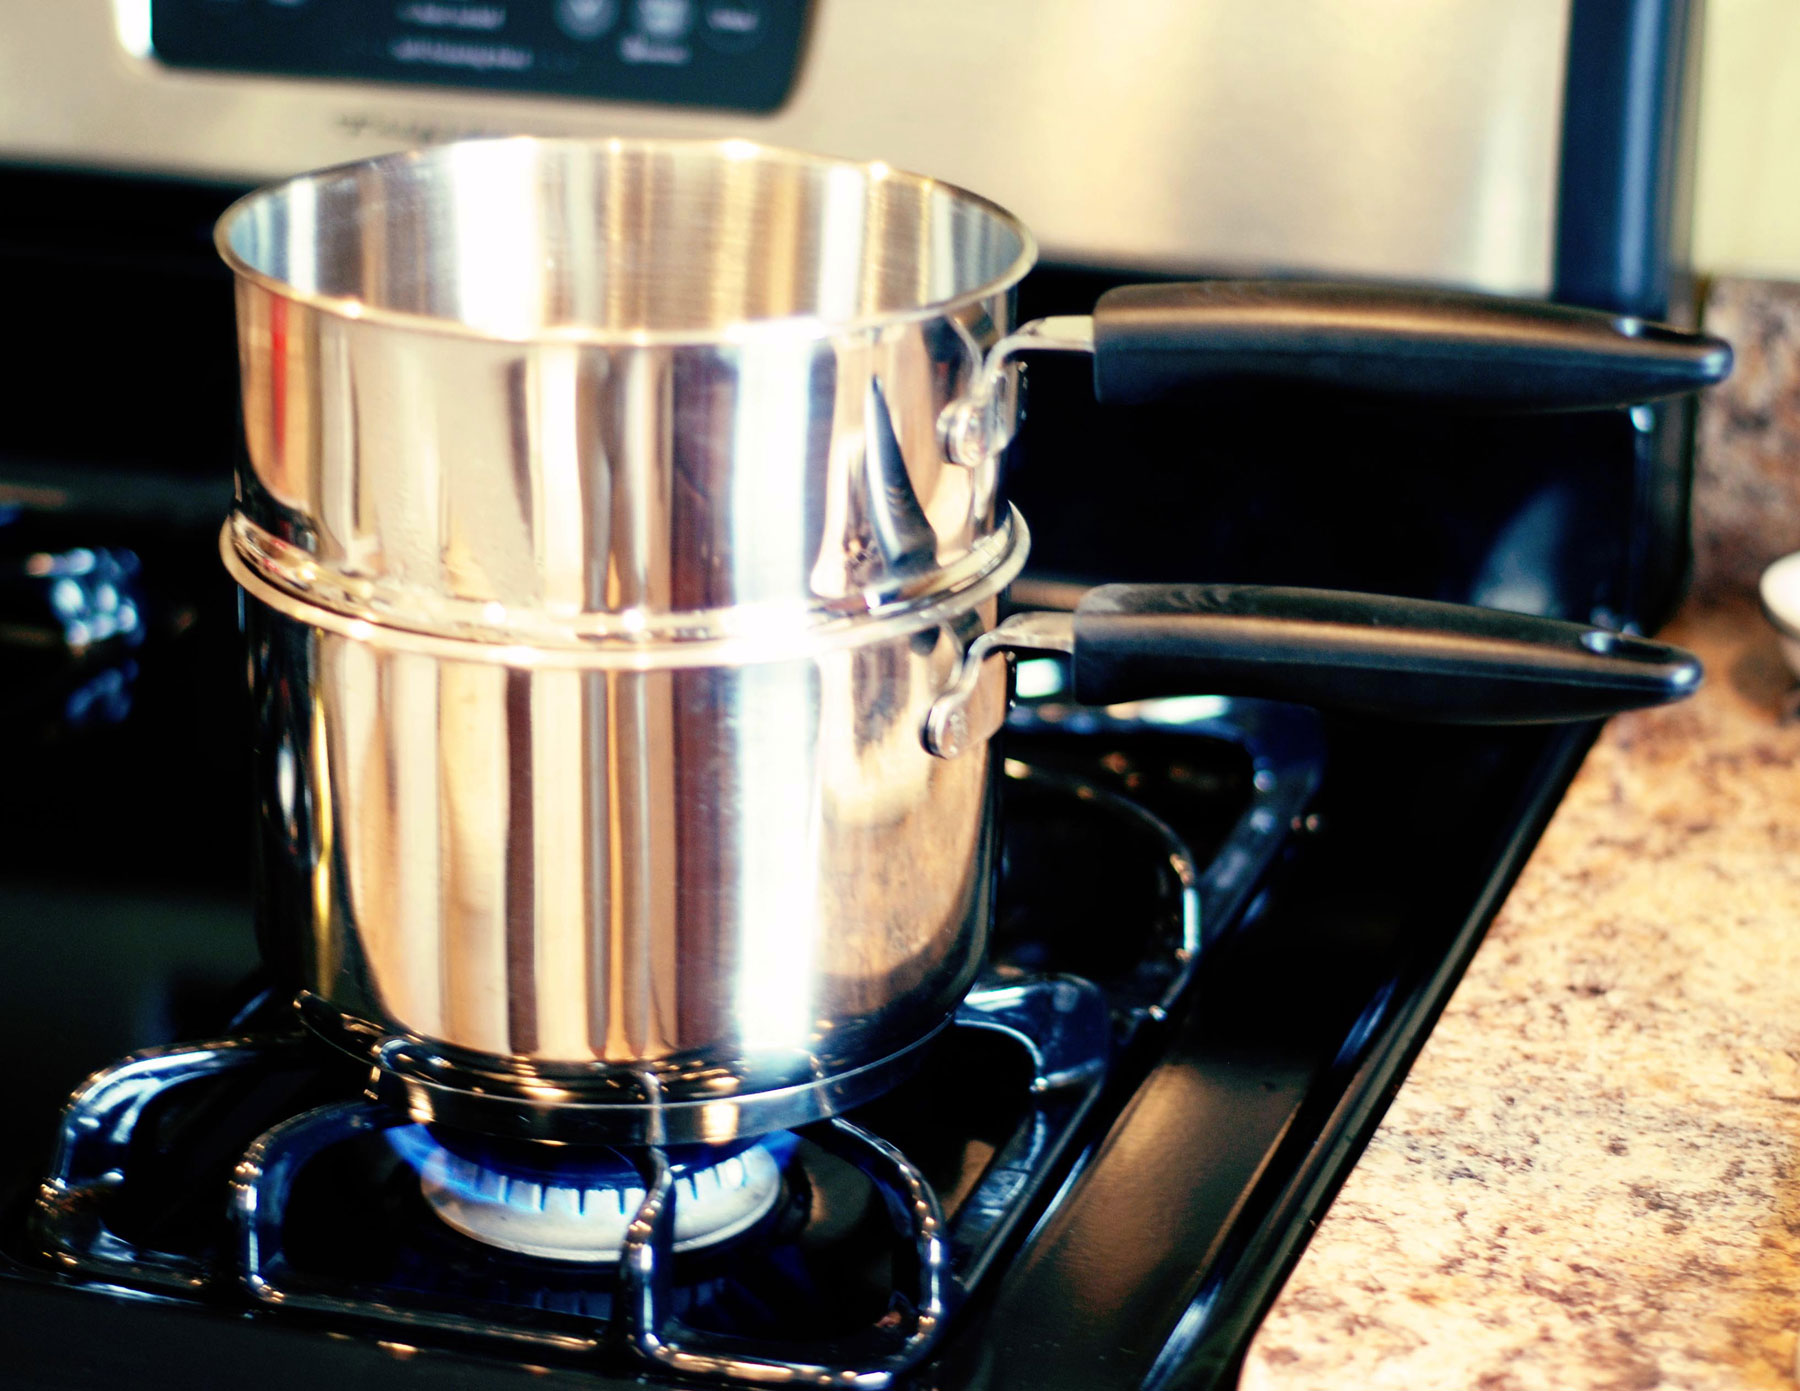 Double boiler on stove